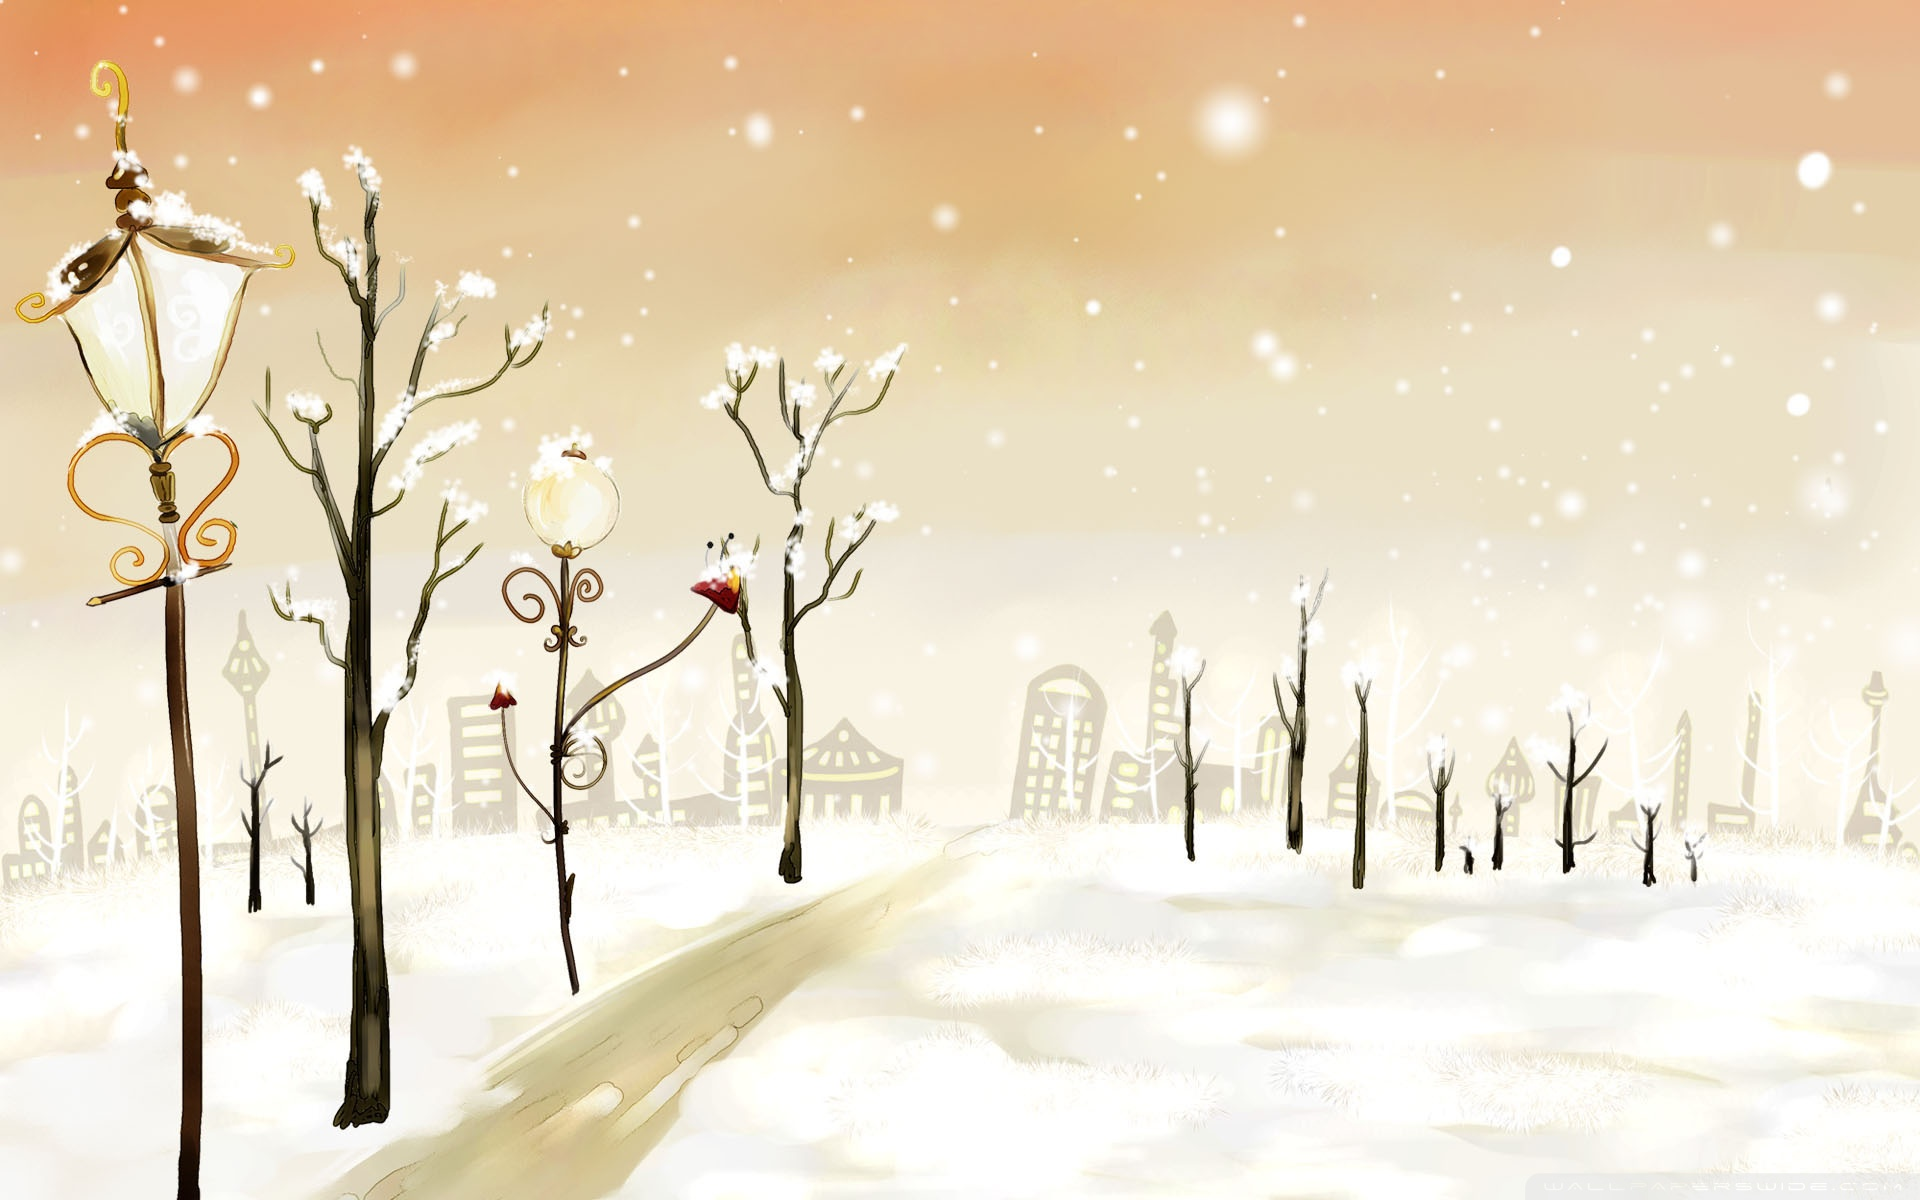 Cute Winter Desktop Background HD 1920x1200 deskbgcom 1920x1200